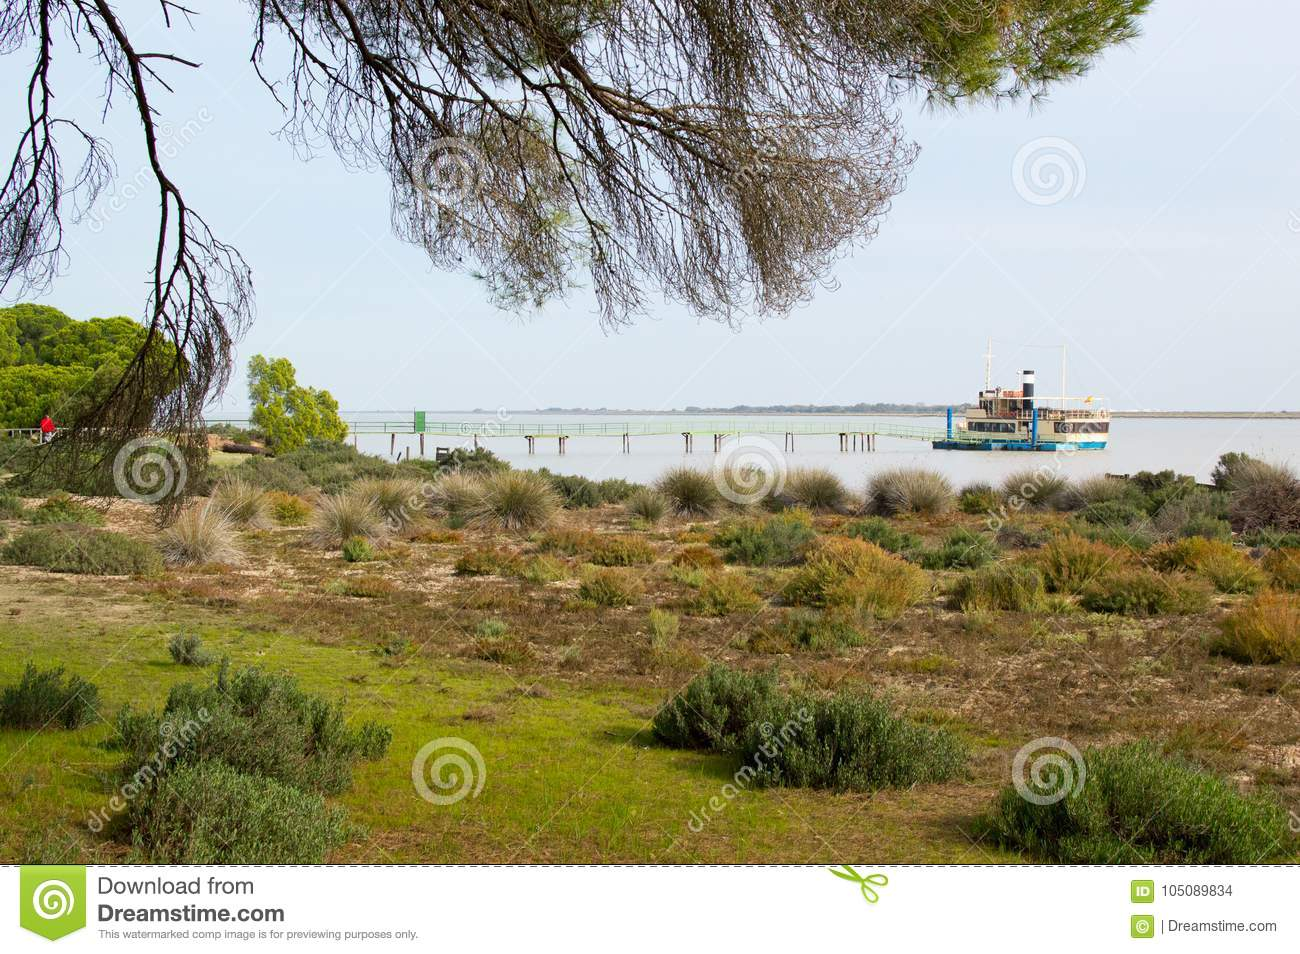 Banks of the Guadalquivir in the Doñana National Park